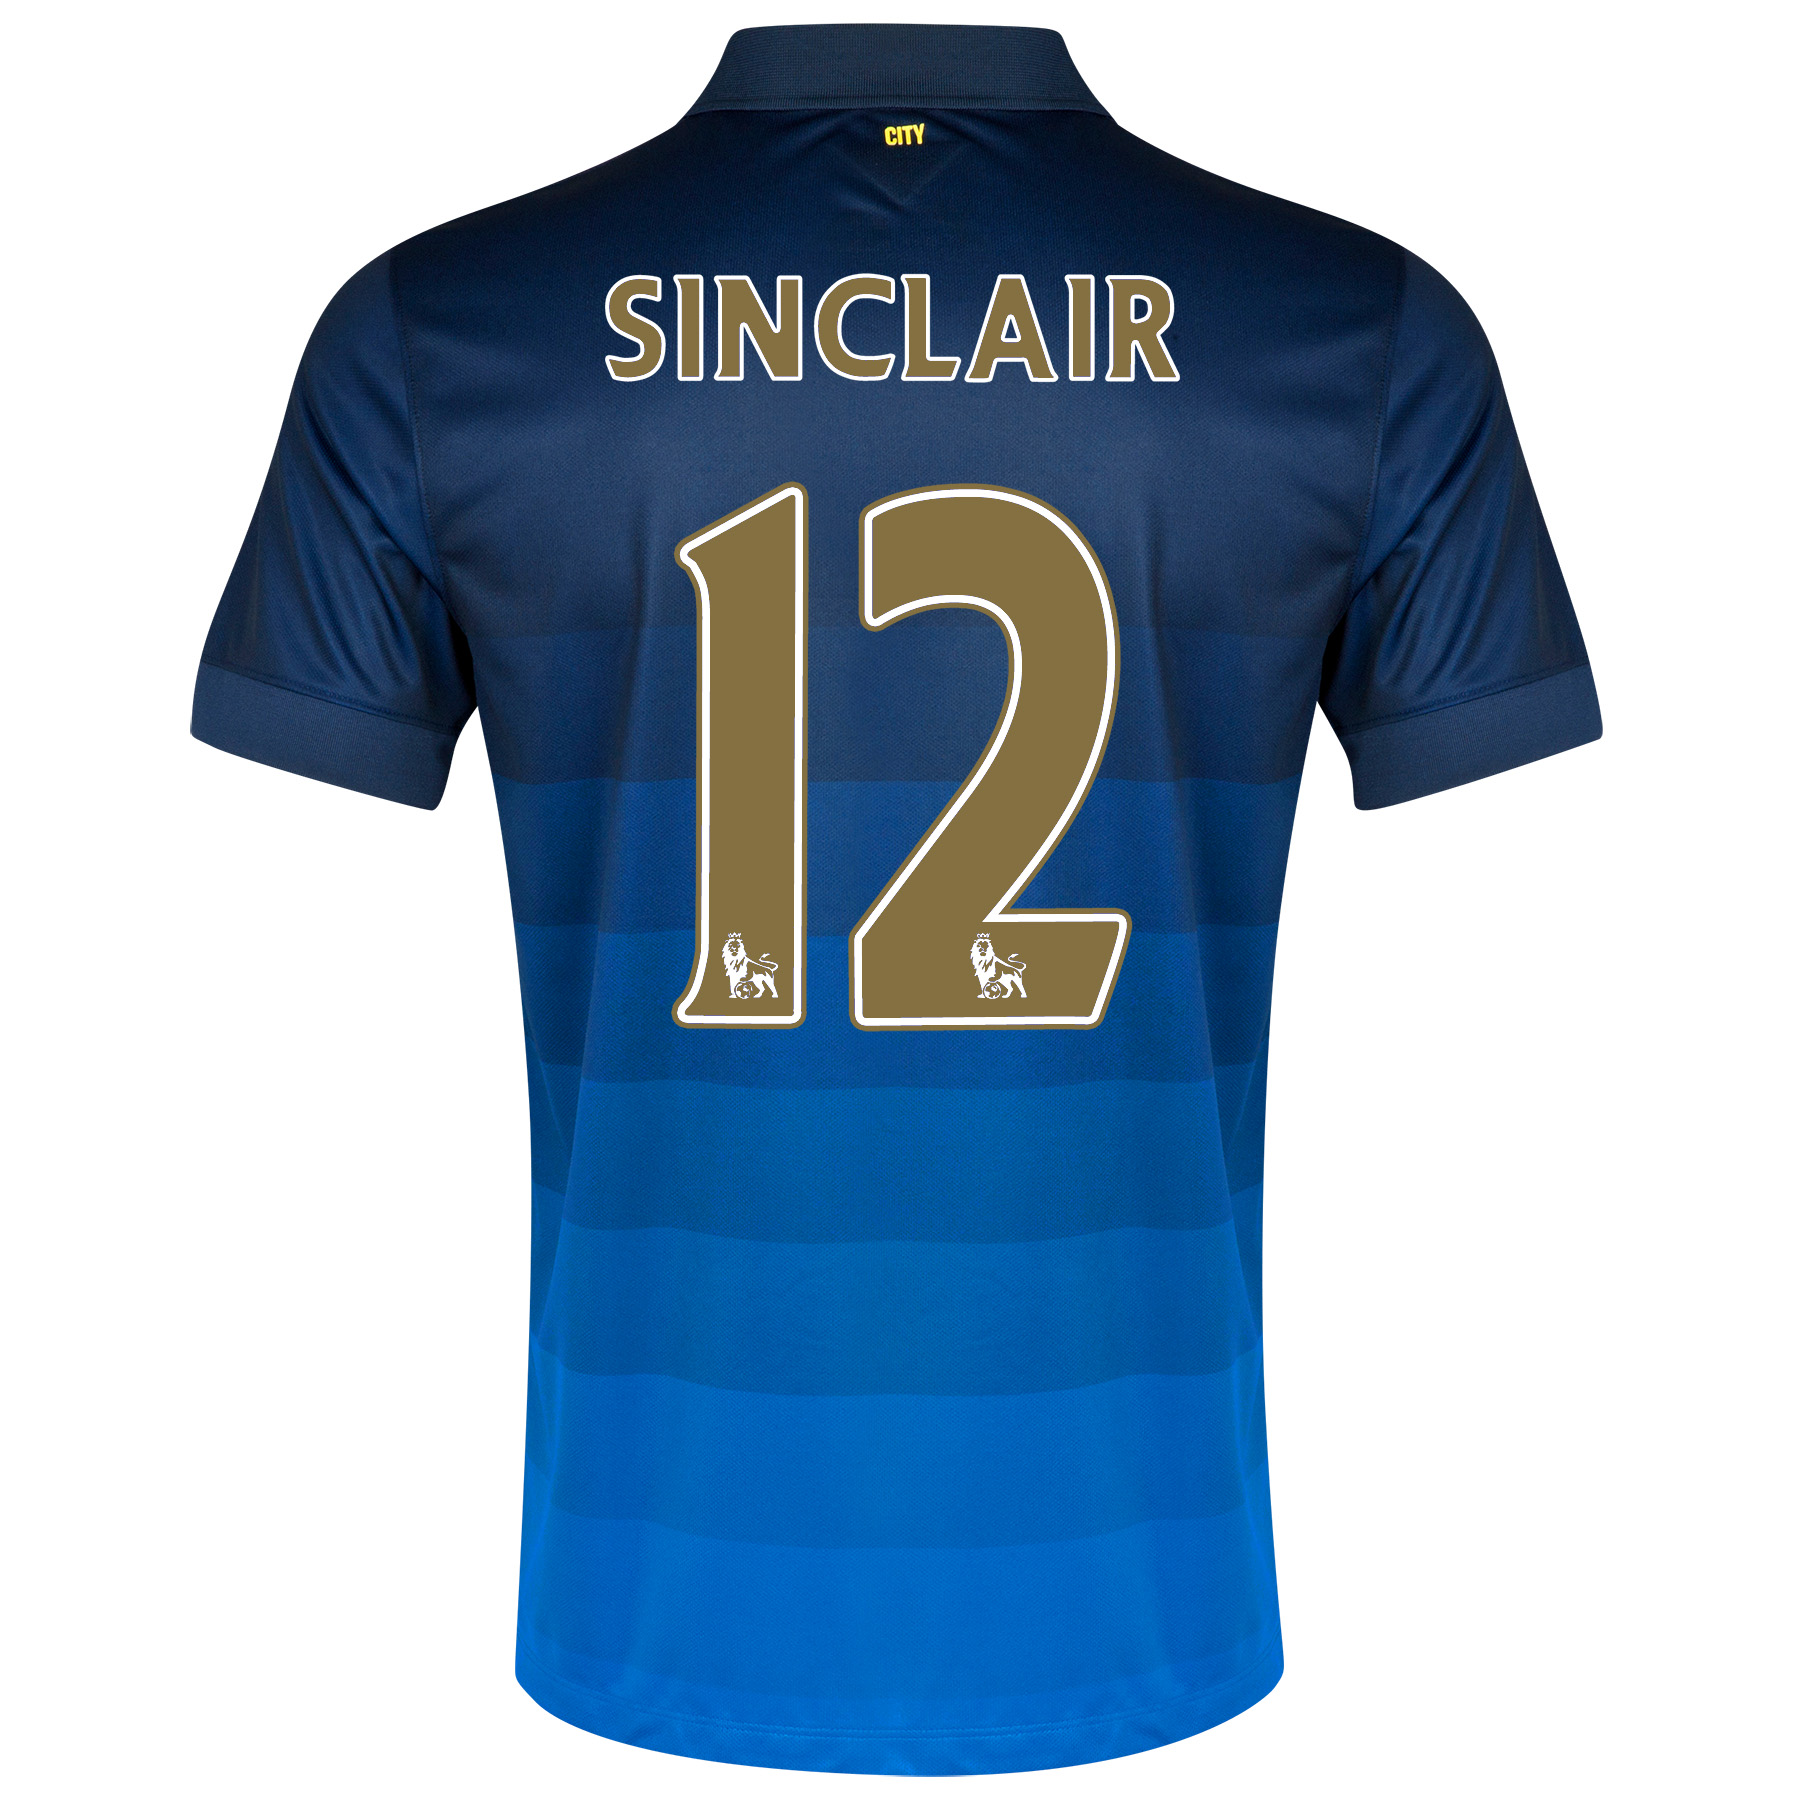 Manchester City Away Shirt 2014/15 with Sinclair 12 printing